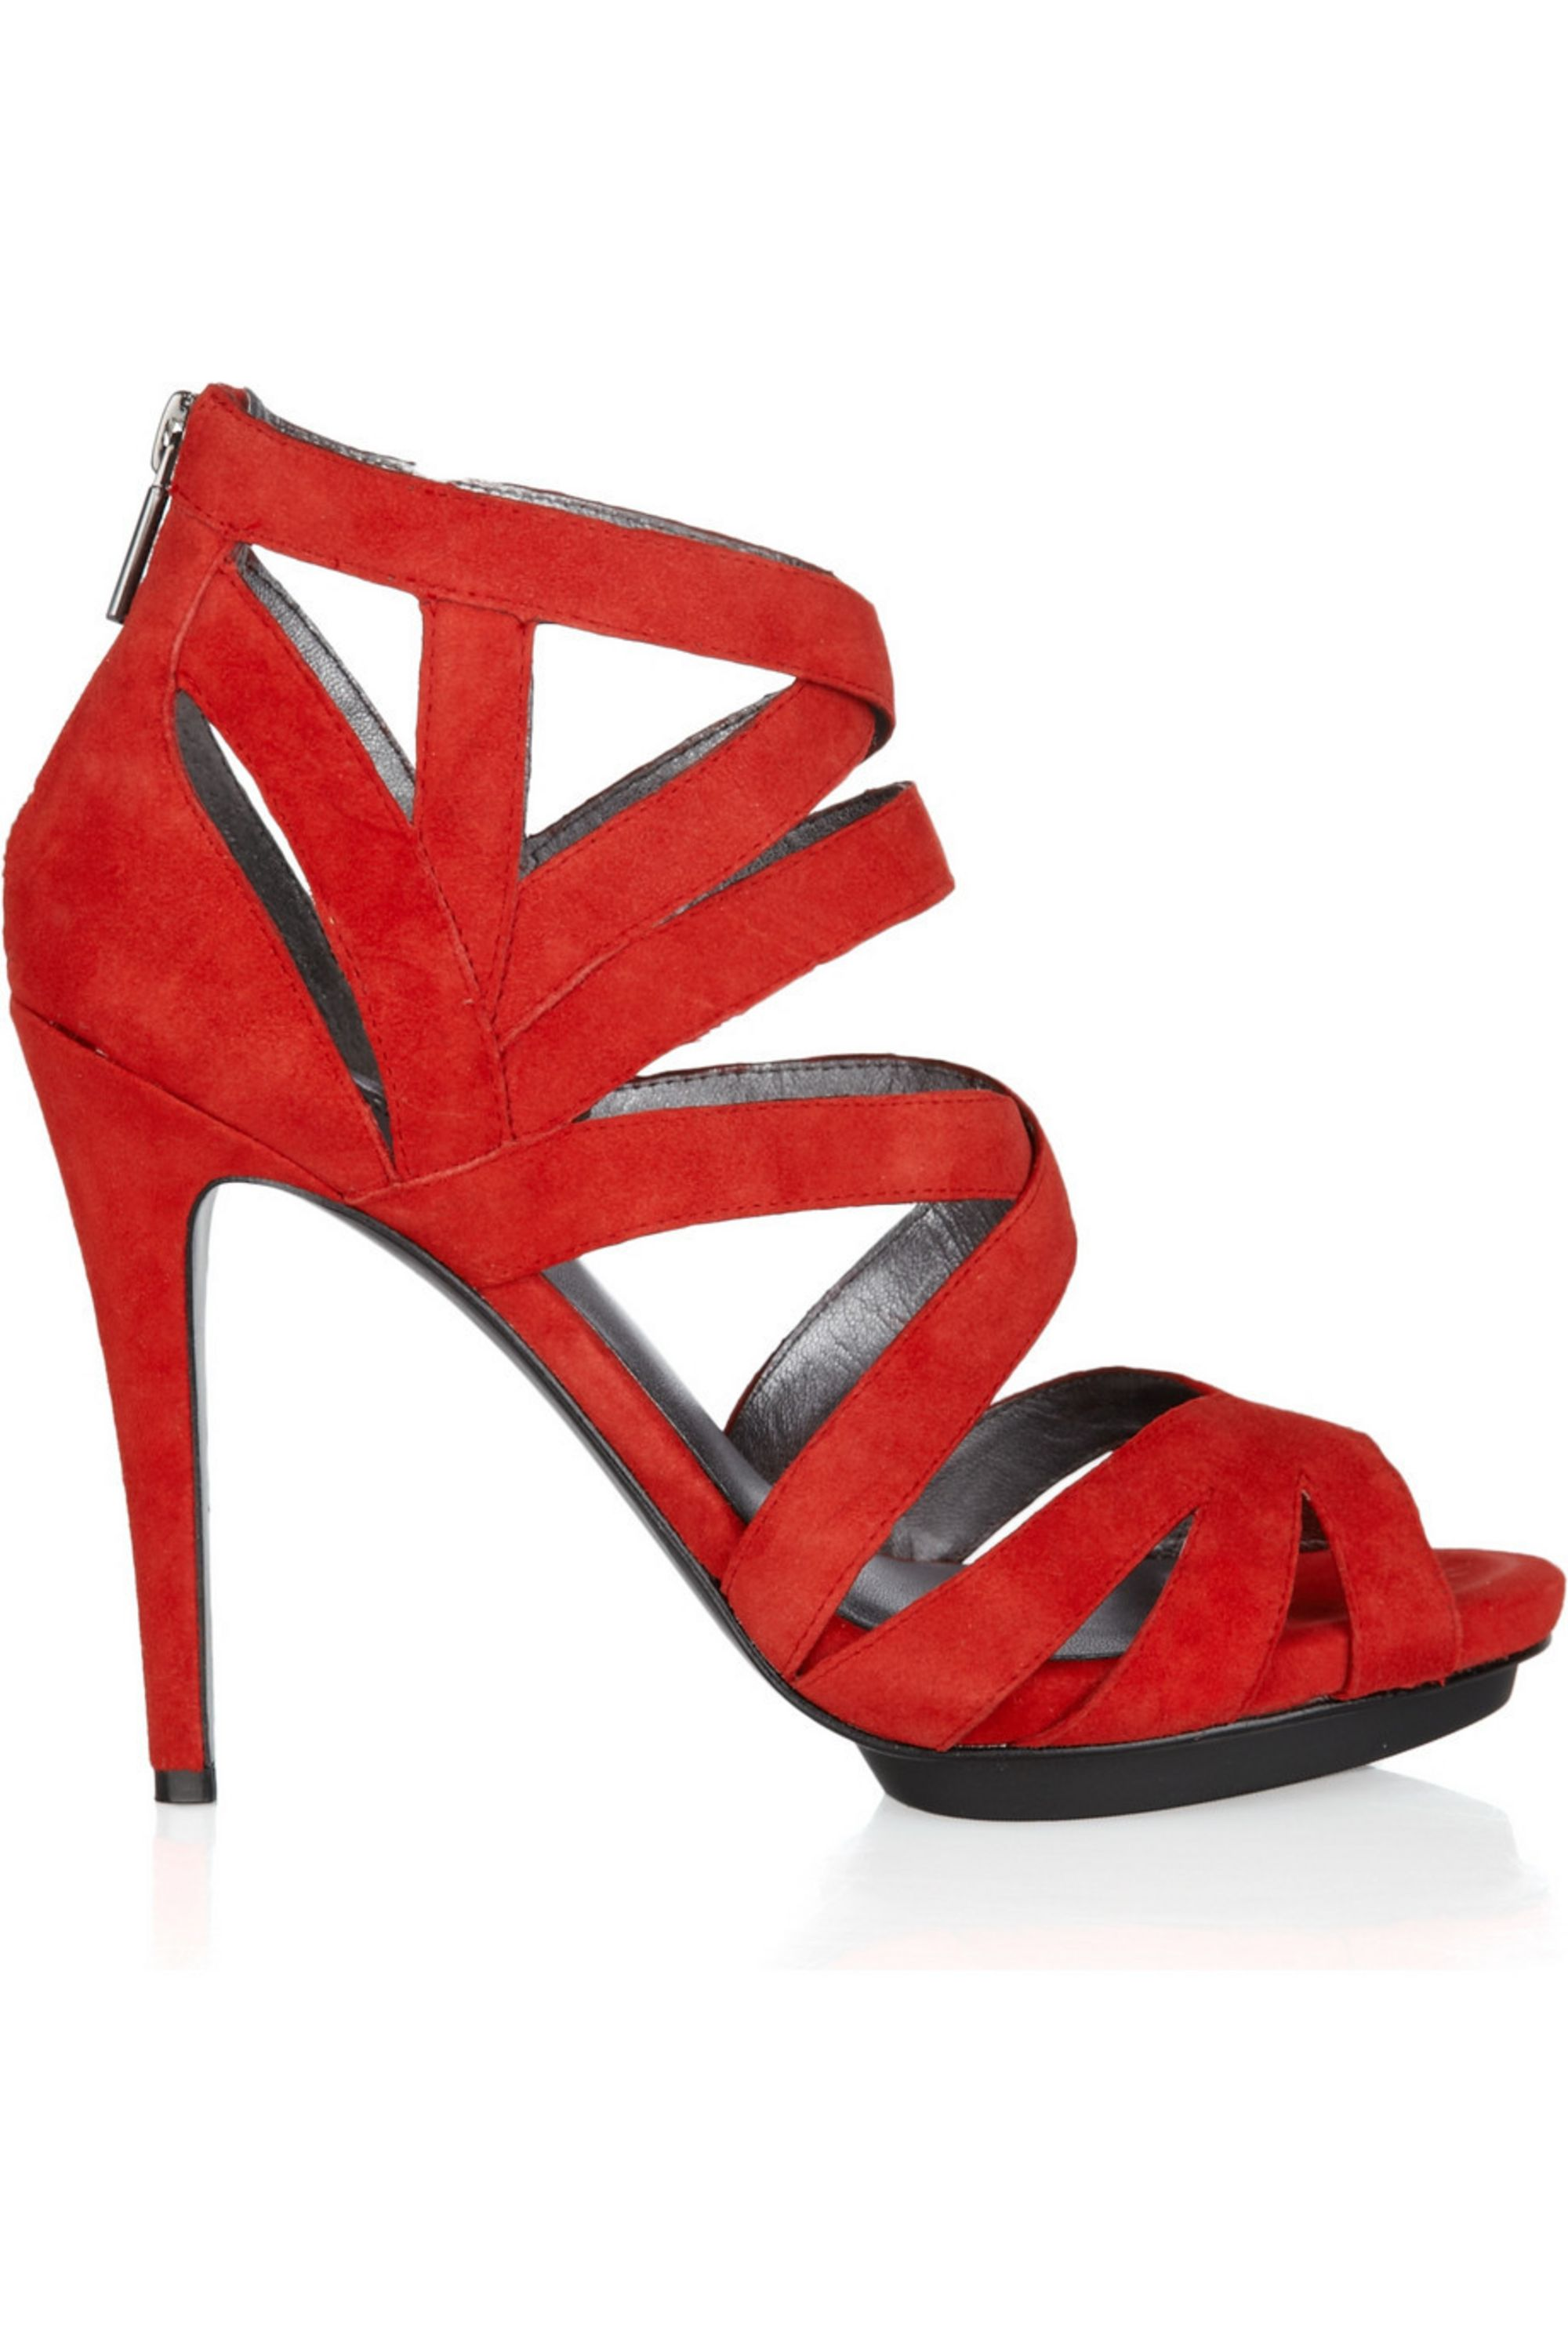 DKNY Marcey suede sandals